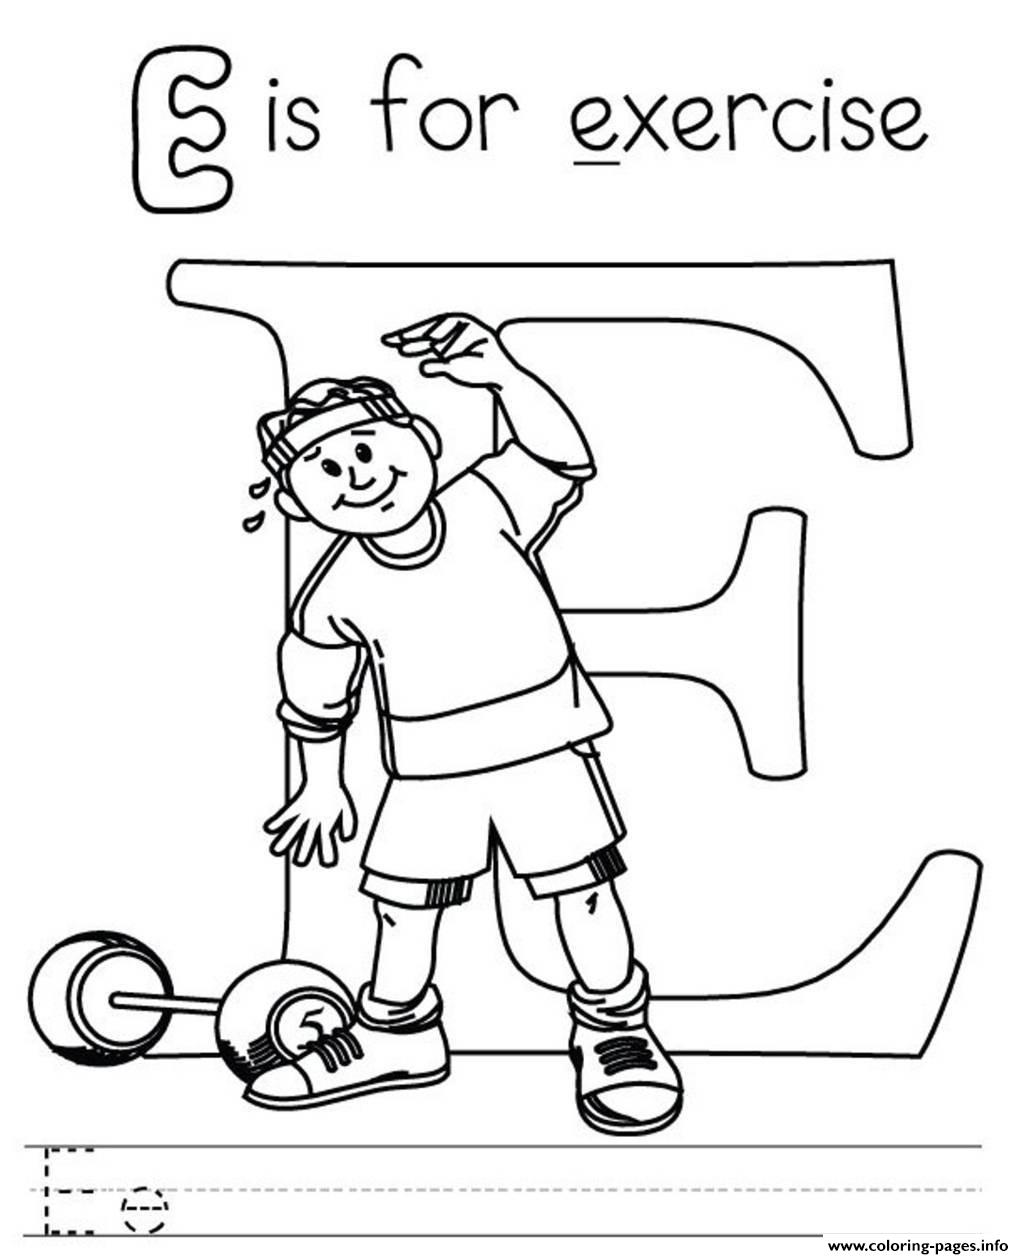 Free coloring pages for exercise - Exercise Alphabet S Free0136 Coloring Pages